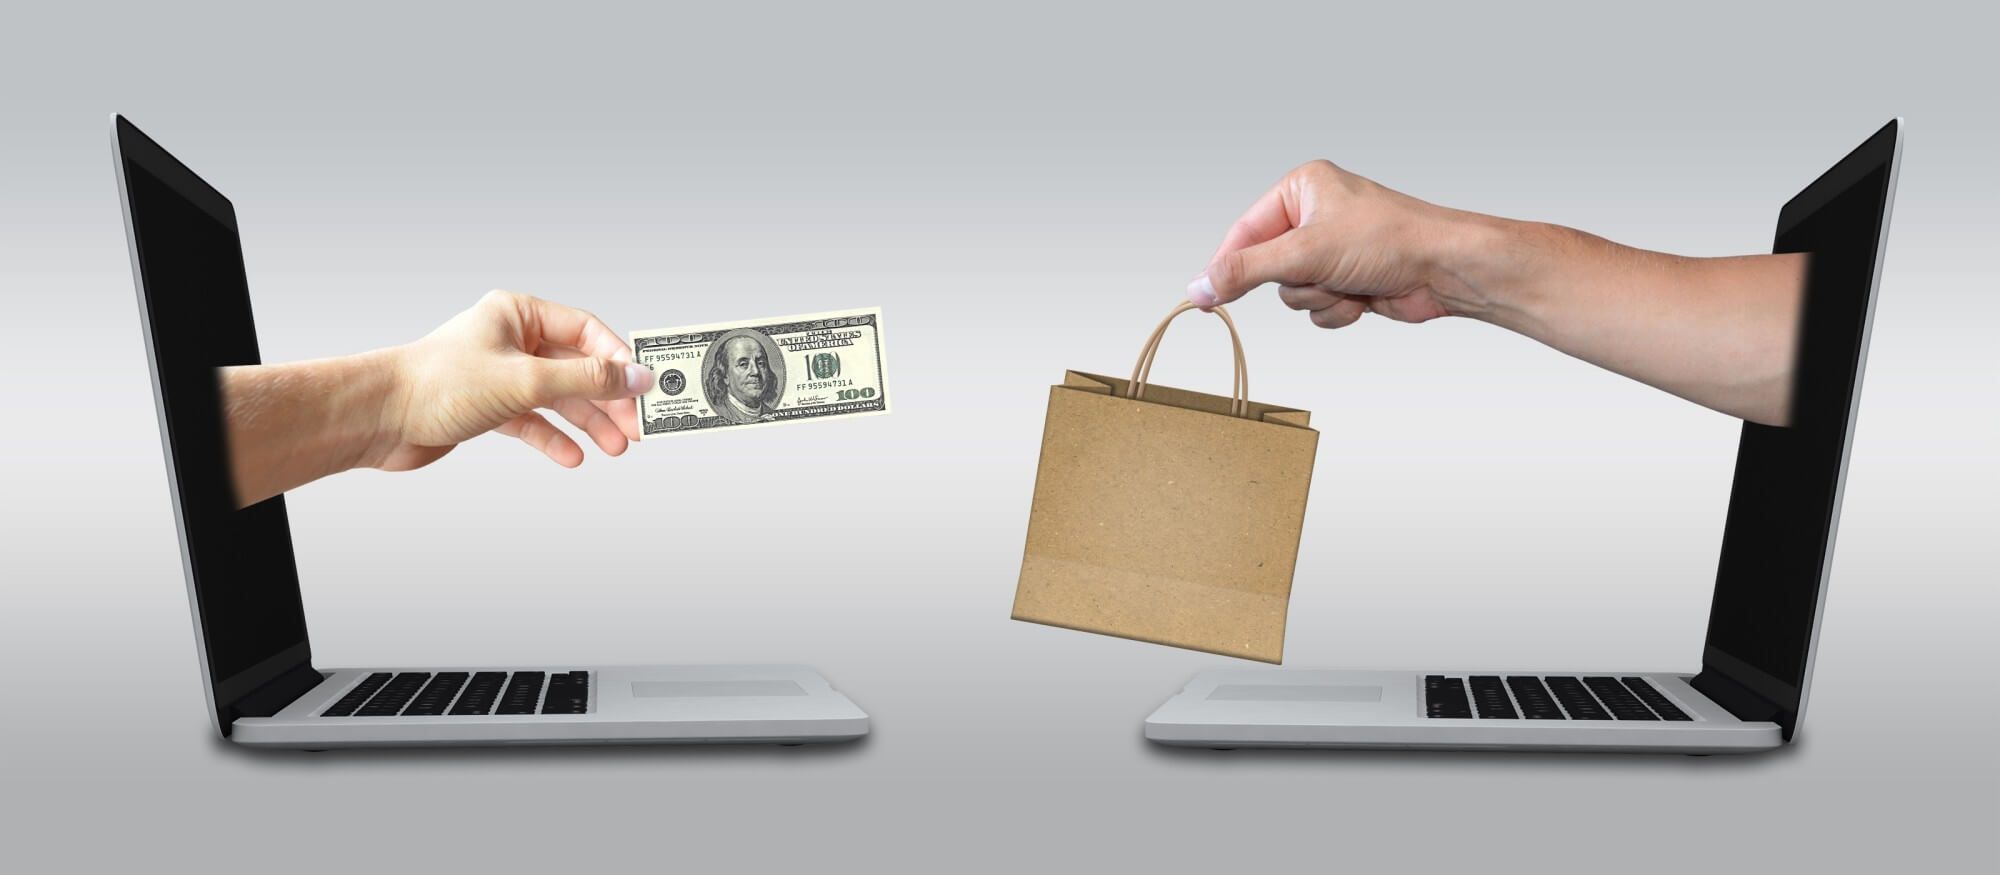 Starting an Online Business? Here's How to Accept Payments